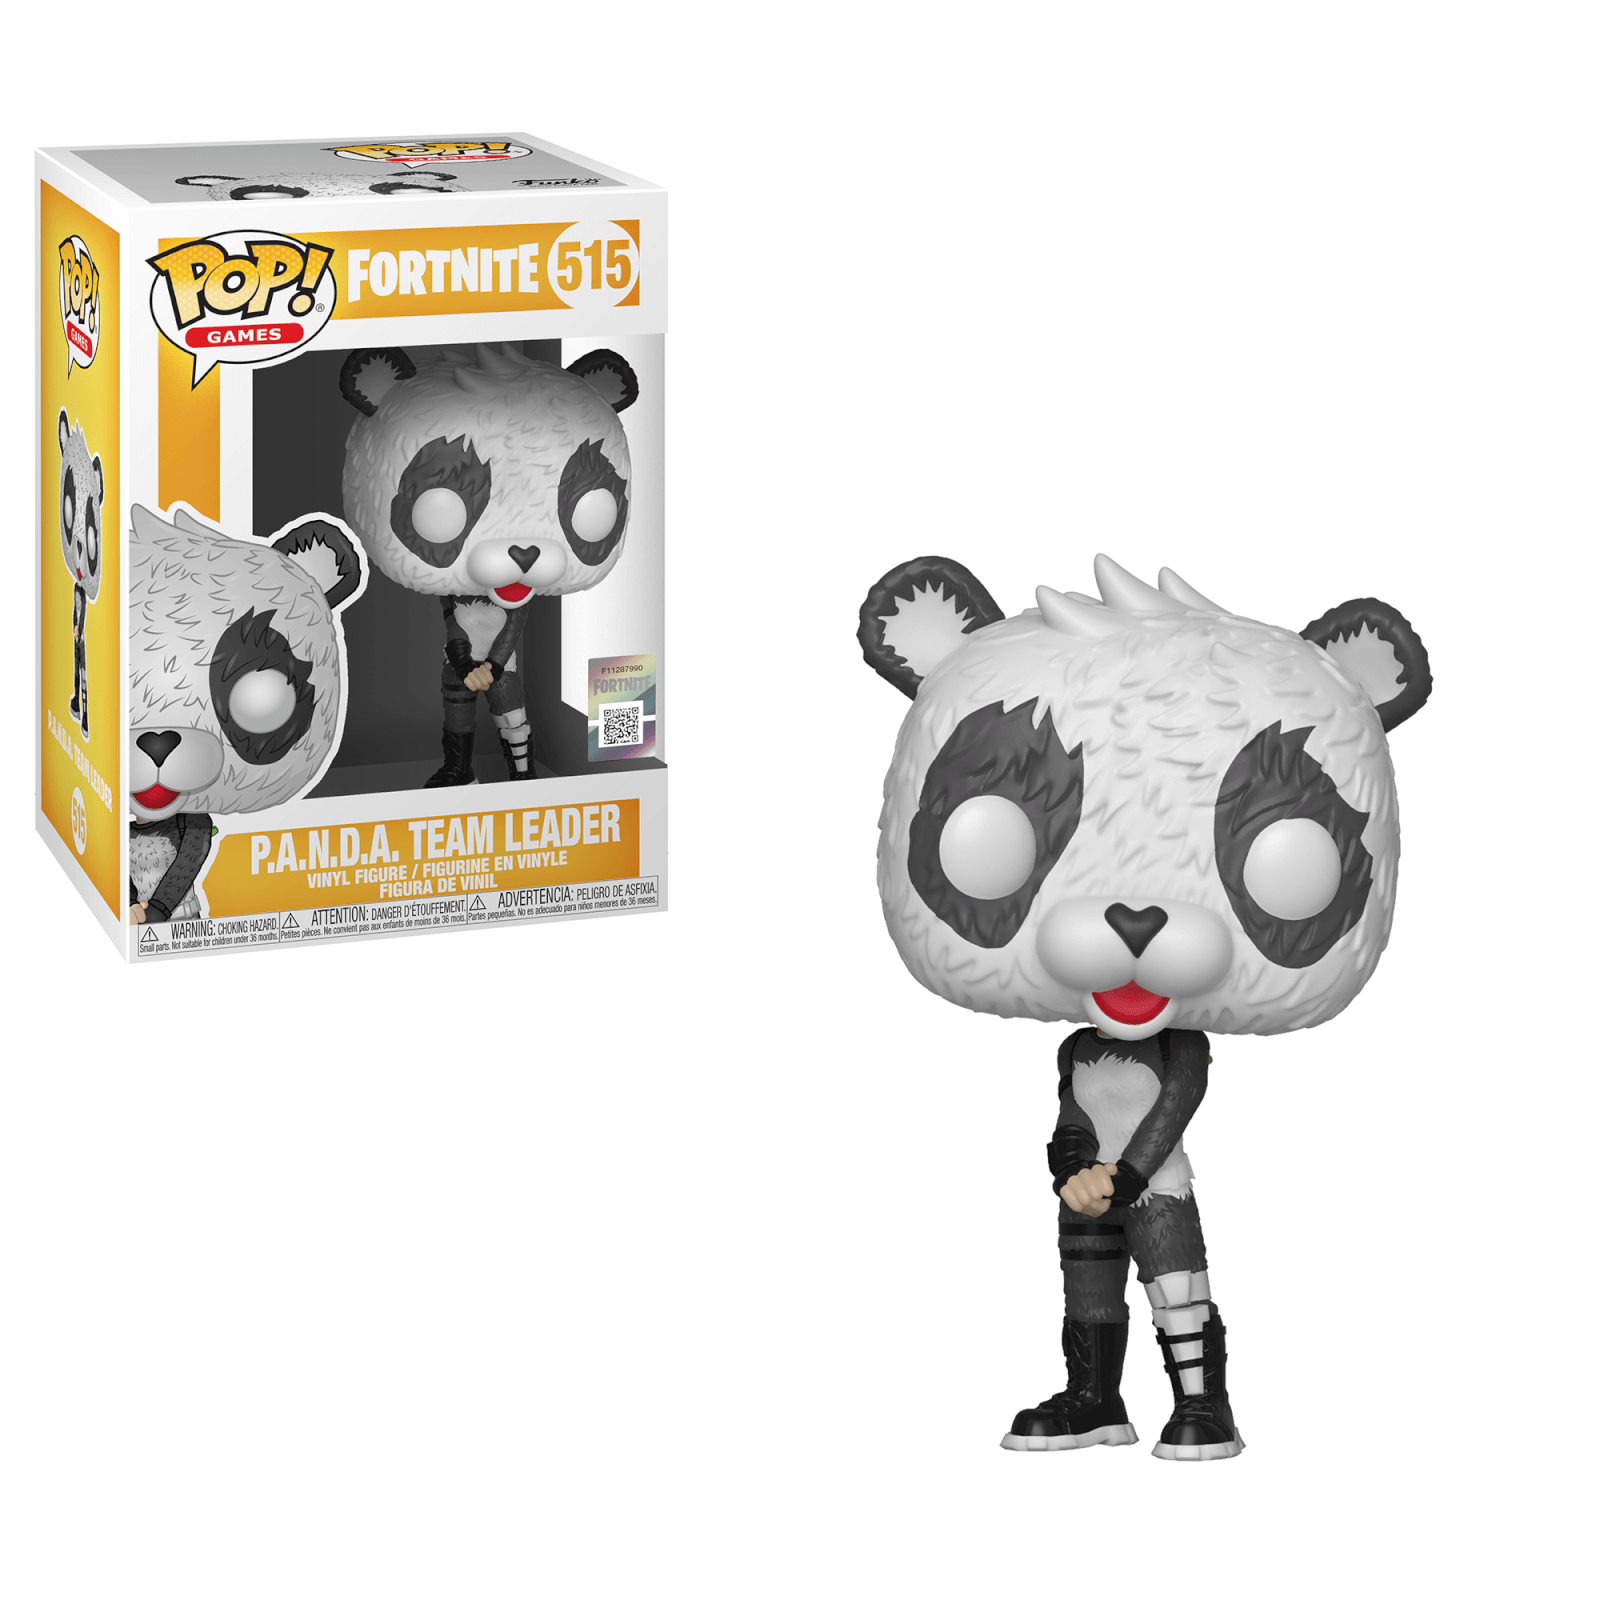 Vinyl Character Figure POP Fortnite Game Panda Team Leader Funko Pop